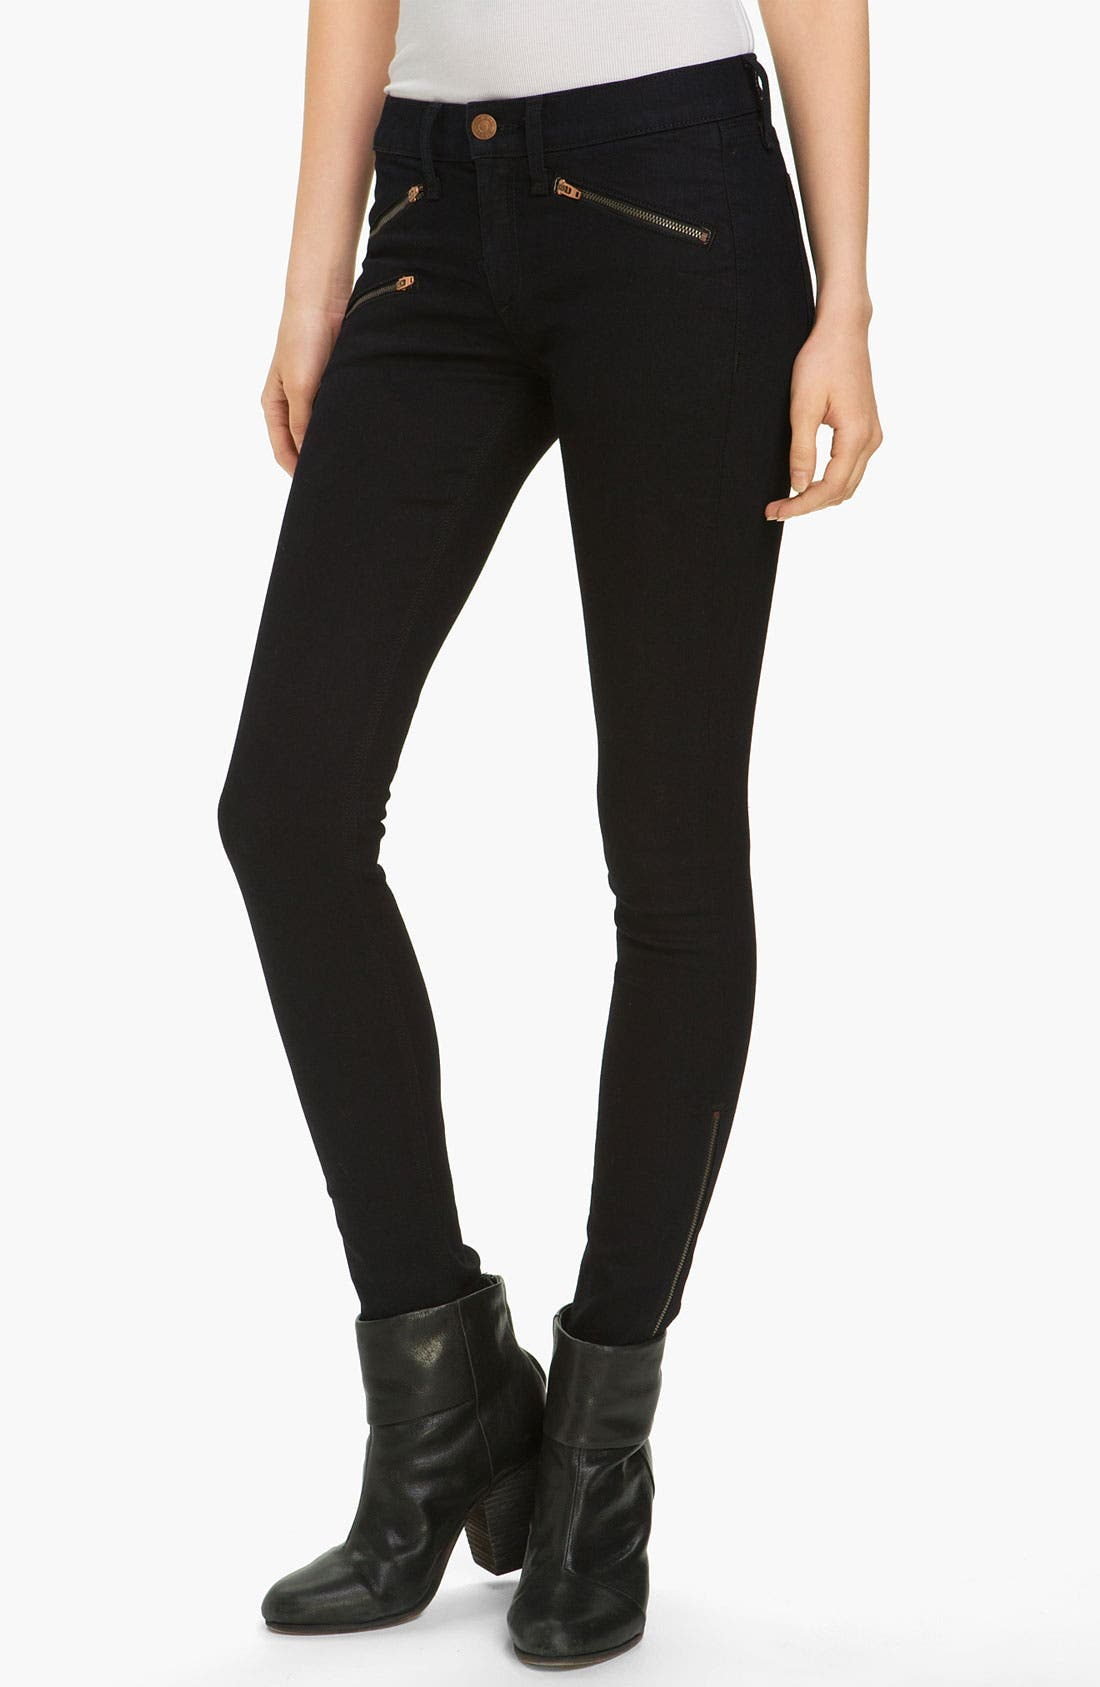 Alternate Image 1 Selected - rag & bone/JEAN Zip Pocket Skinny Stretch Jeans